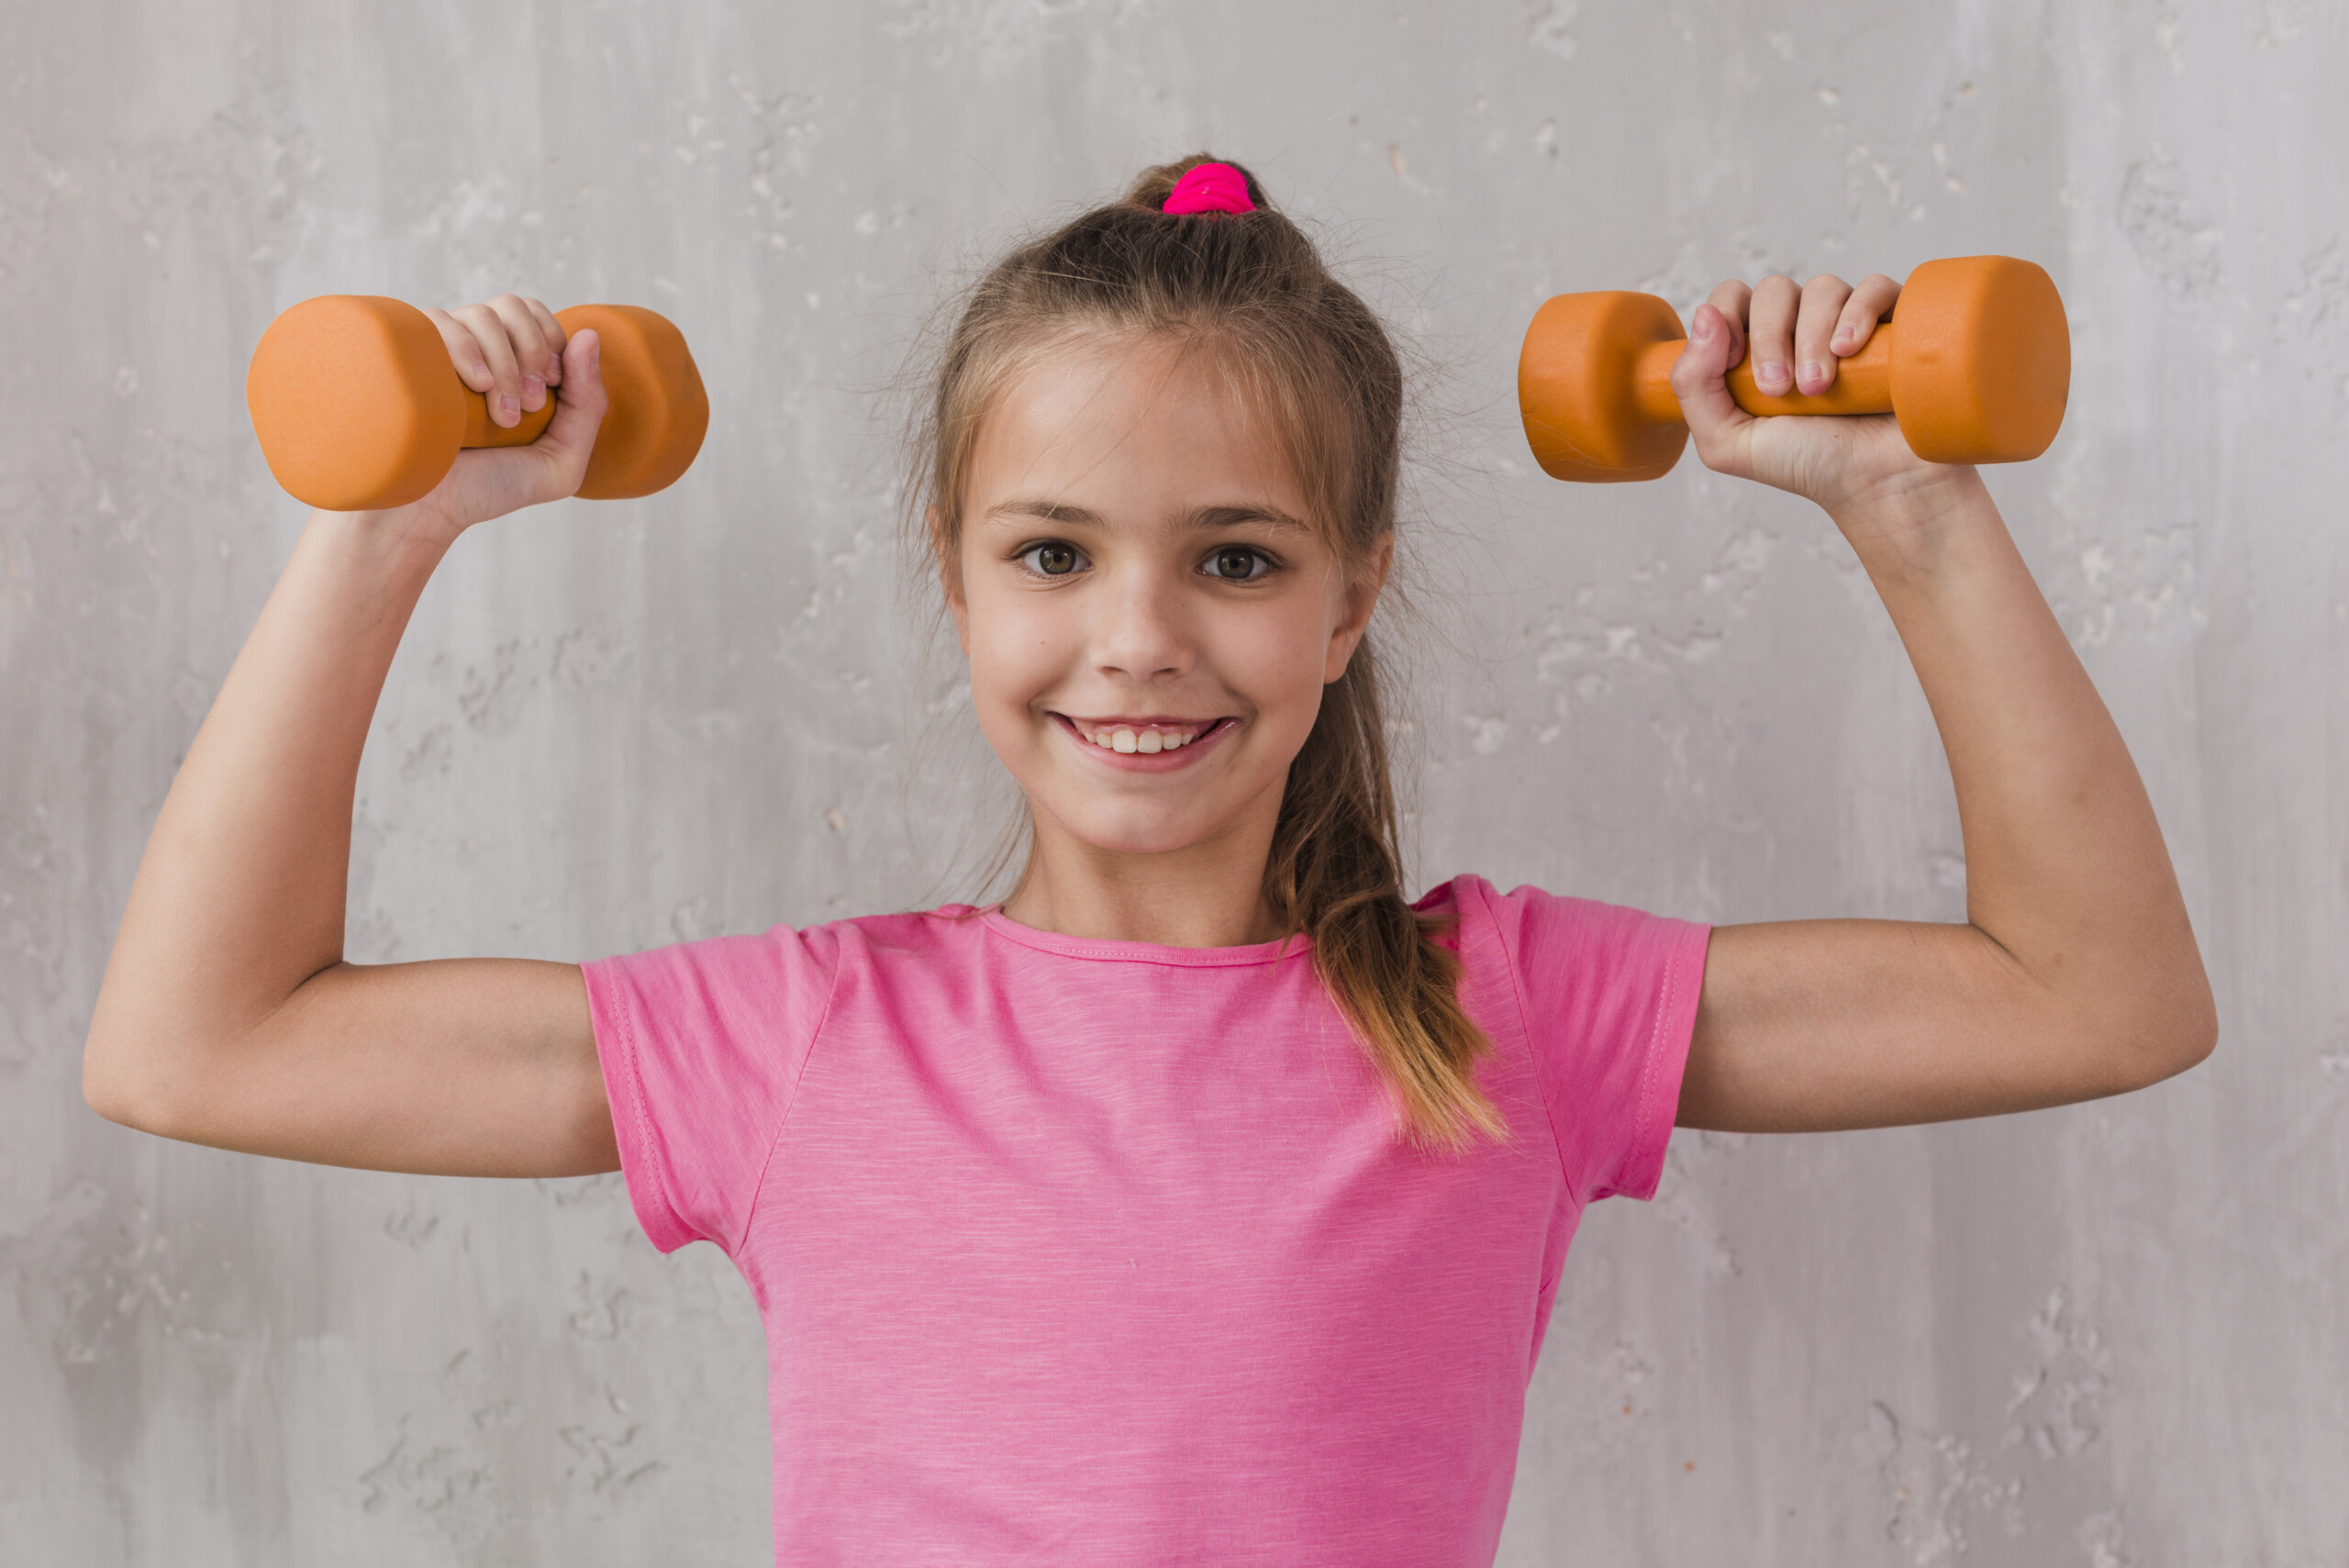 Can a Child Have OSA Without Daytime Symptoms?